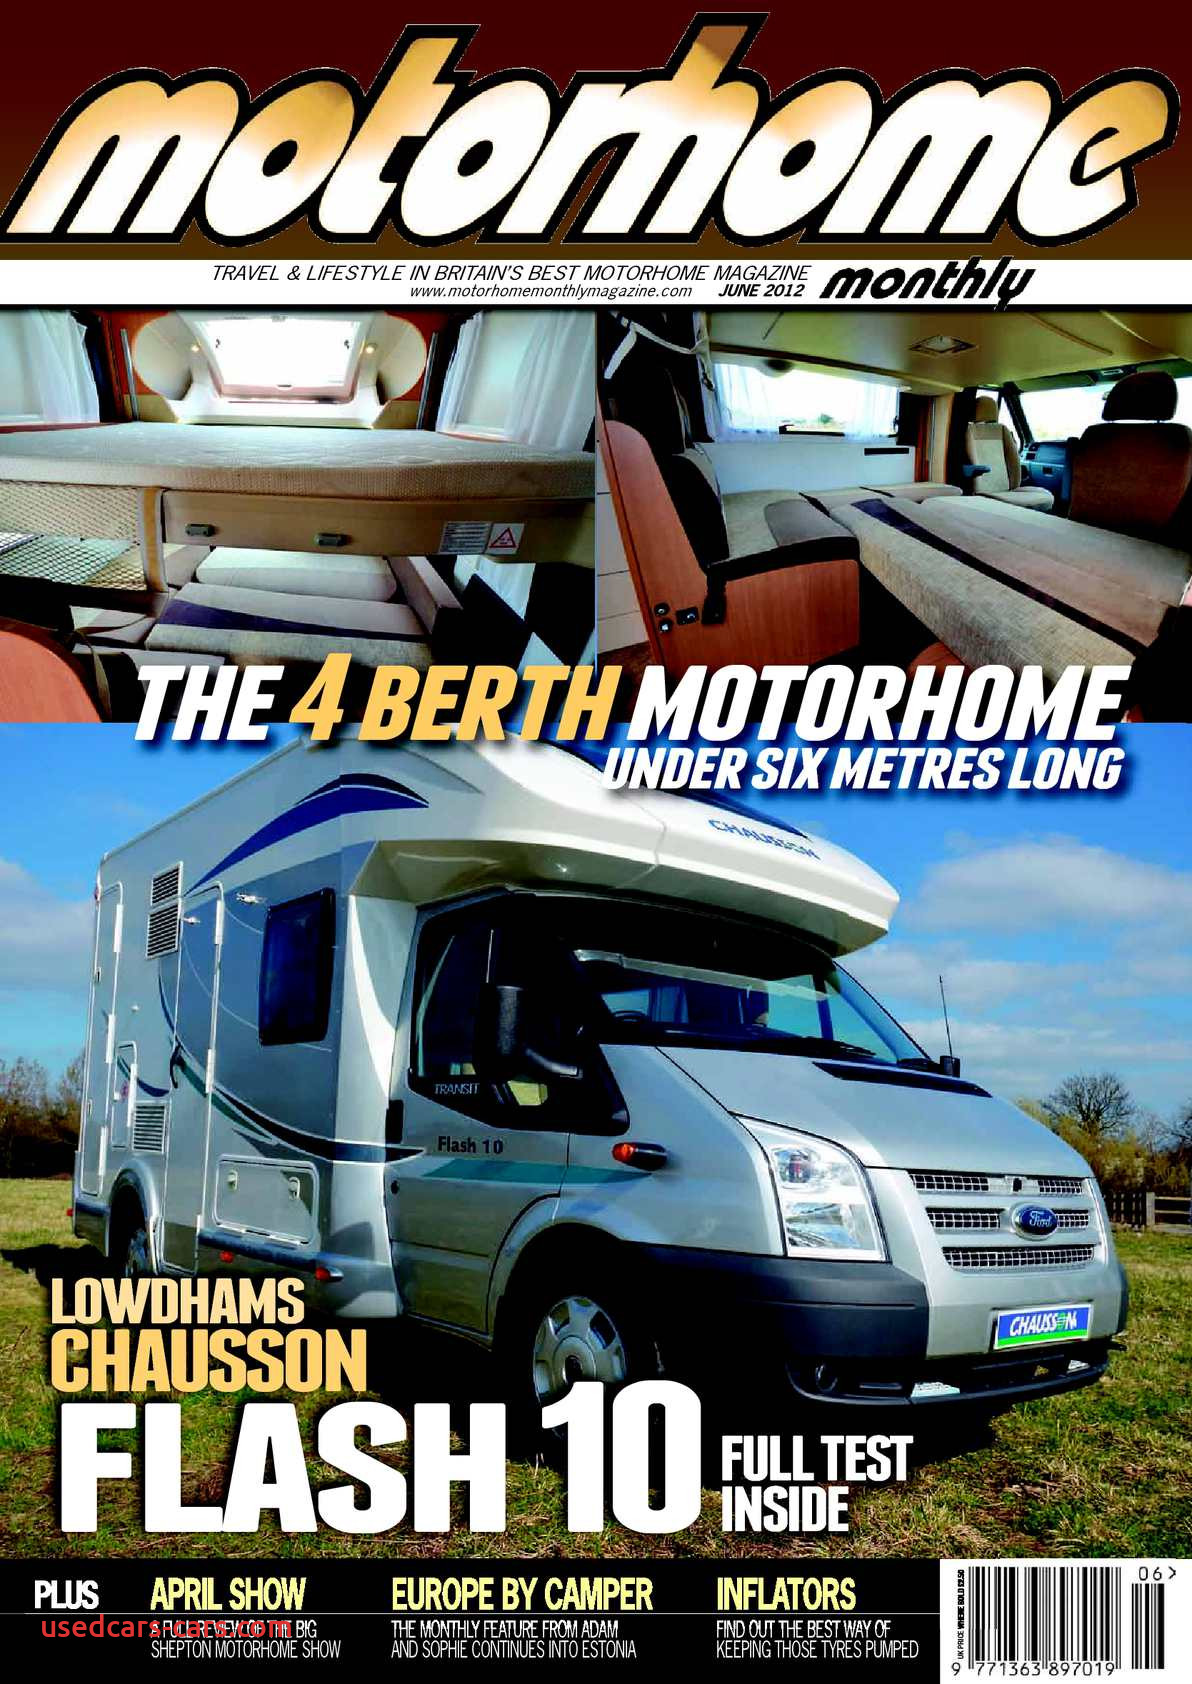 Used Cars for Sale Yeovil Fresh Calaméo June 2012 Motorhome Monthly